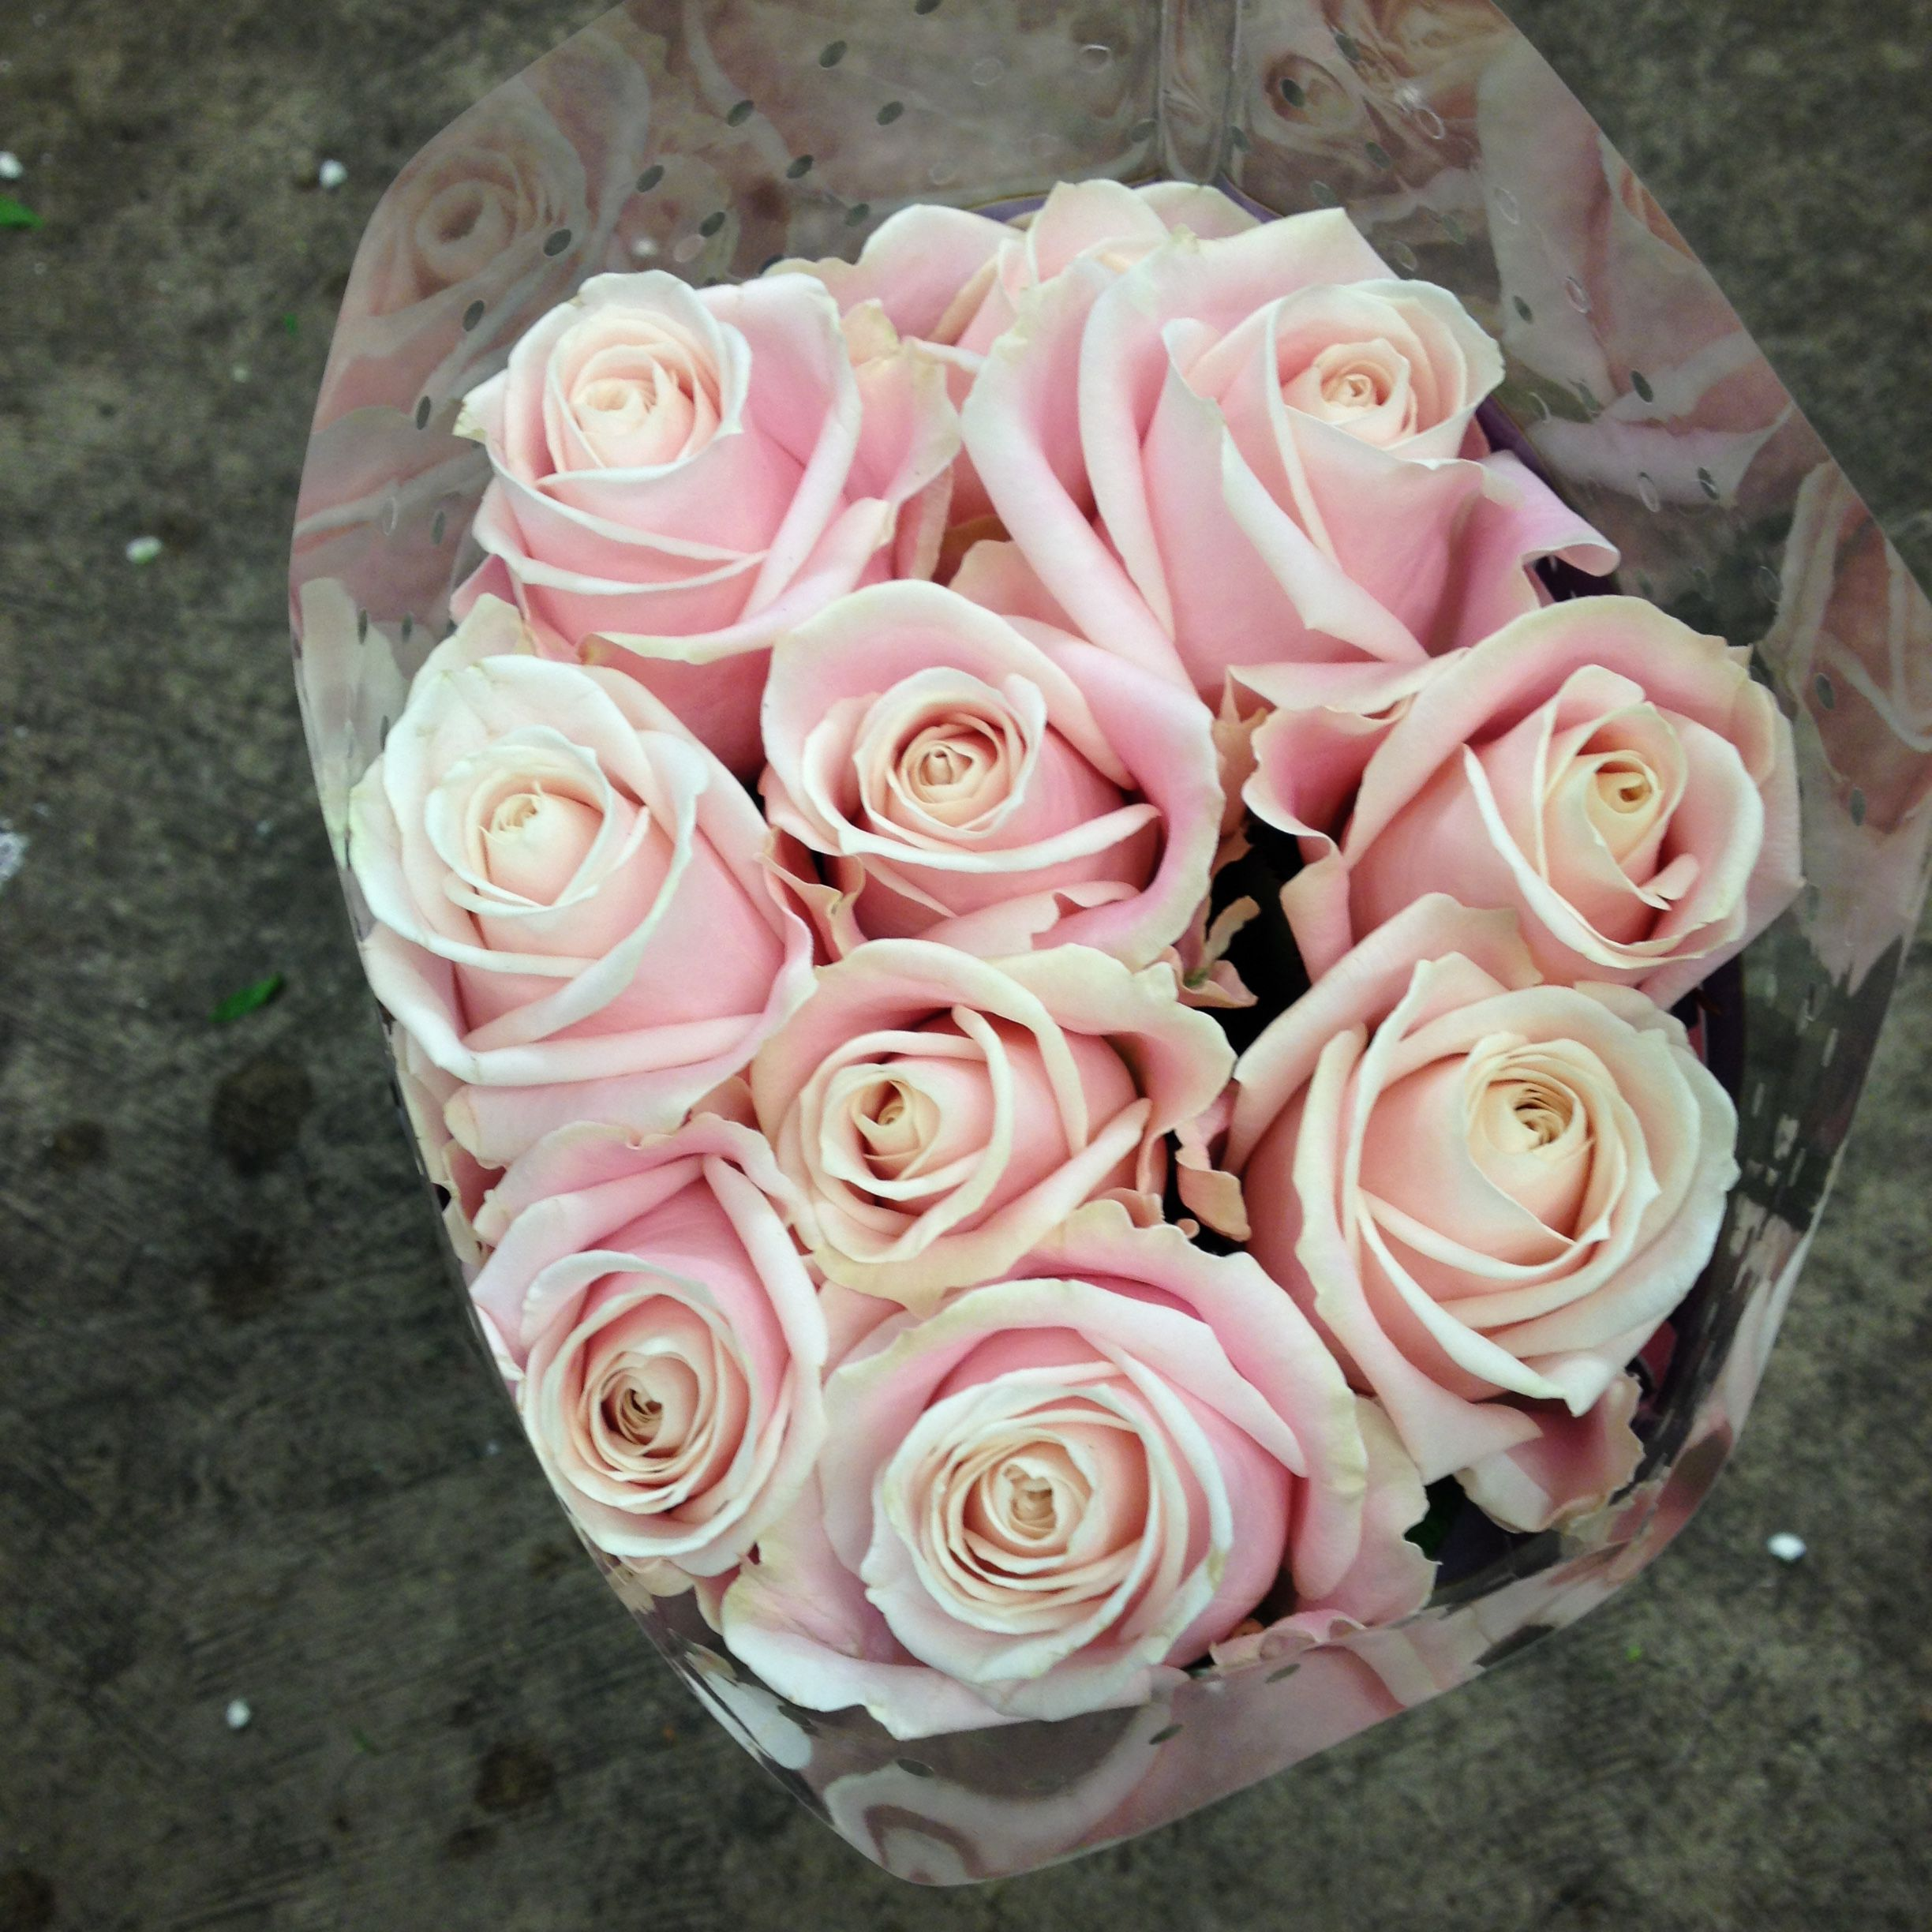 Pale pink rose called sweet avalanche sold in bunches of 20 stems from the